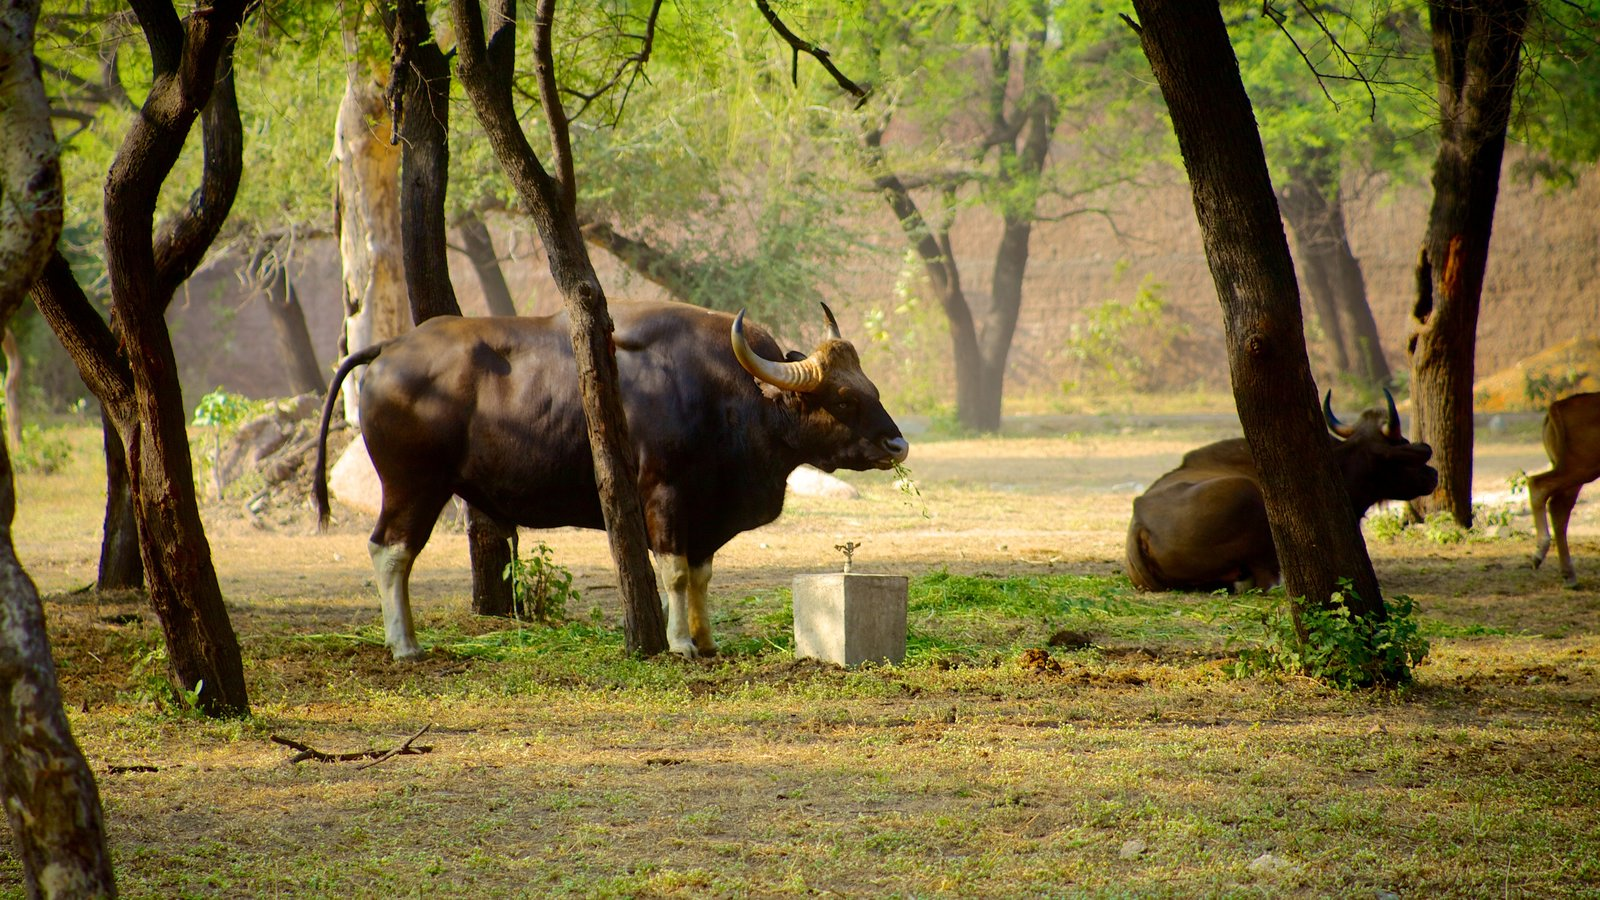 nehru zoological park Nehru zoological park, hyderabad overview with about a 100 species finding habitat here, the nehru zoological park is one of the most enjoyed attractions in the city it is named after pandit jawaharlal nehru and was opened to the public in 1963.